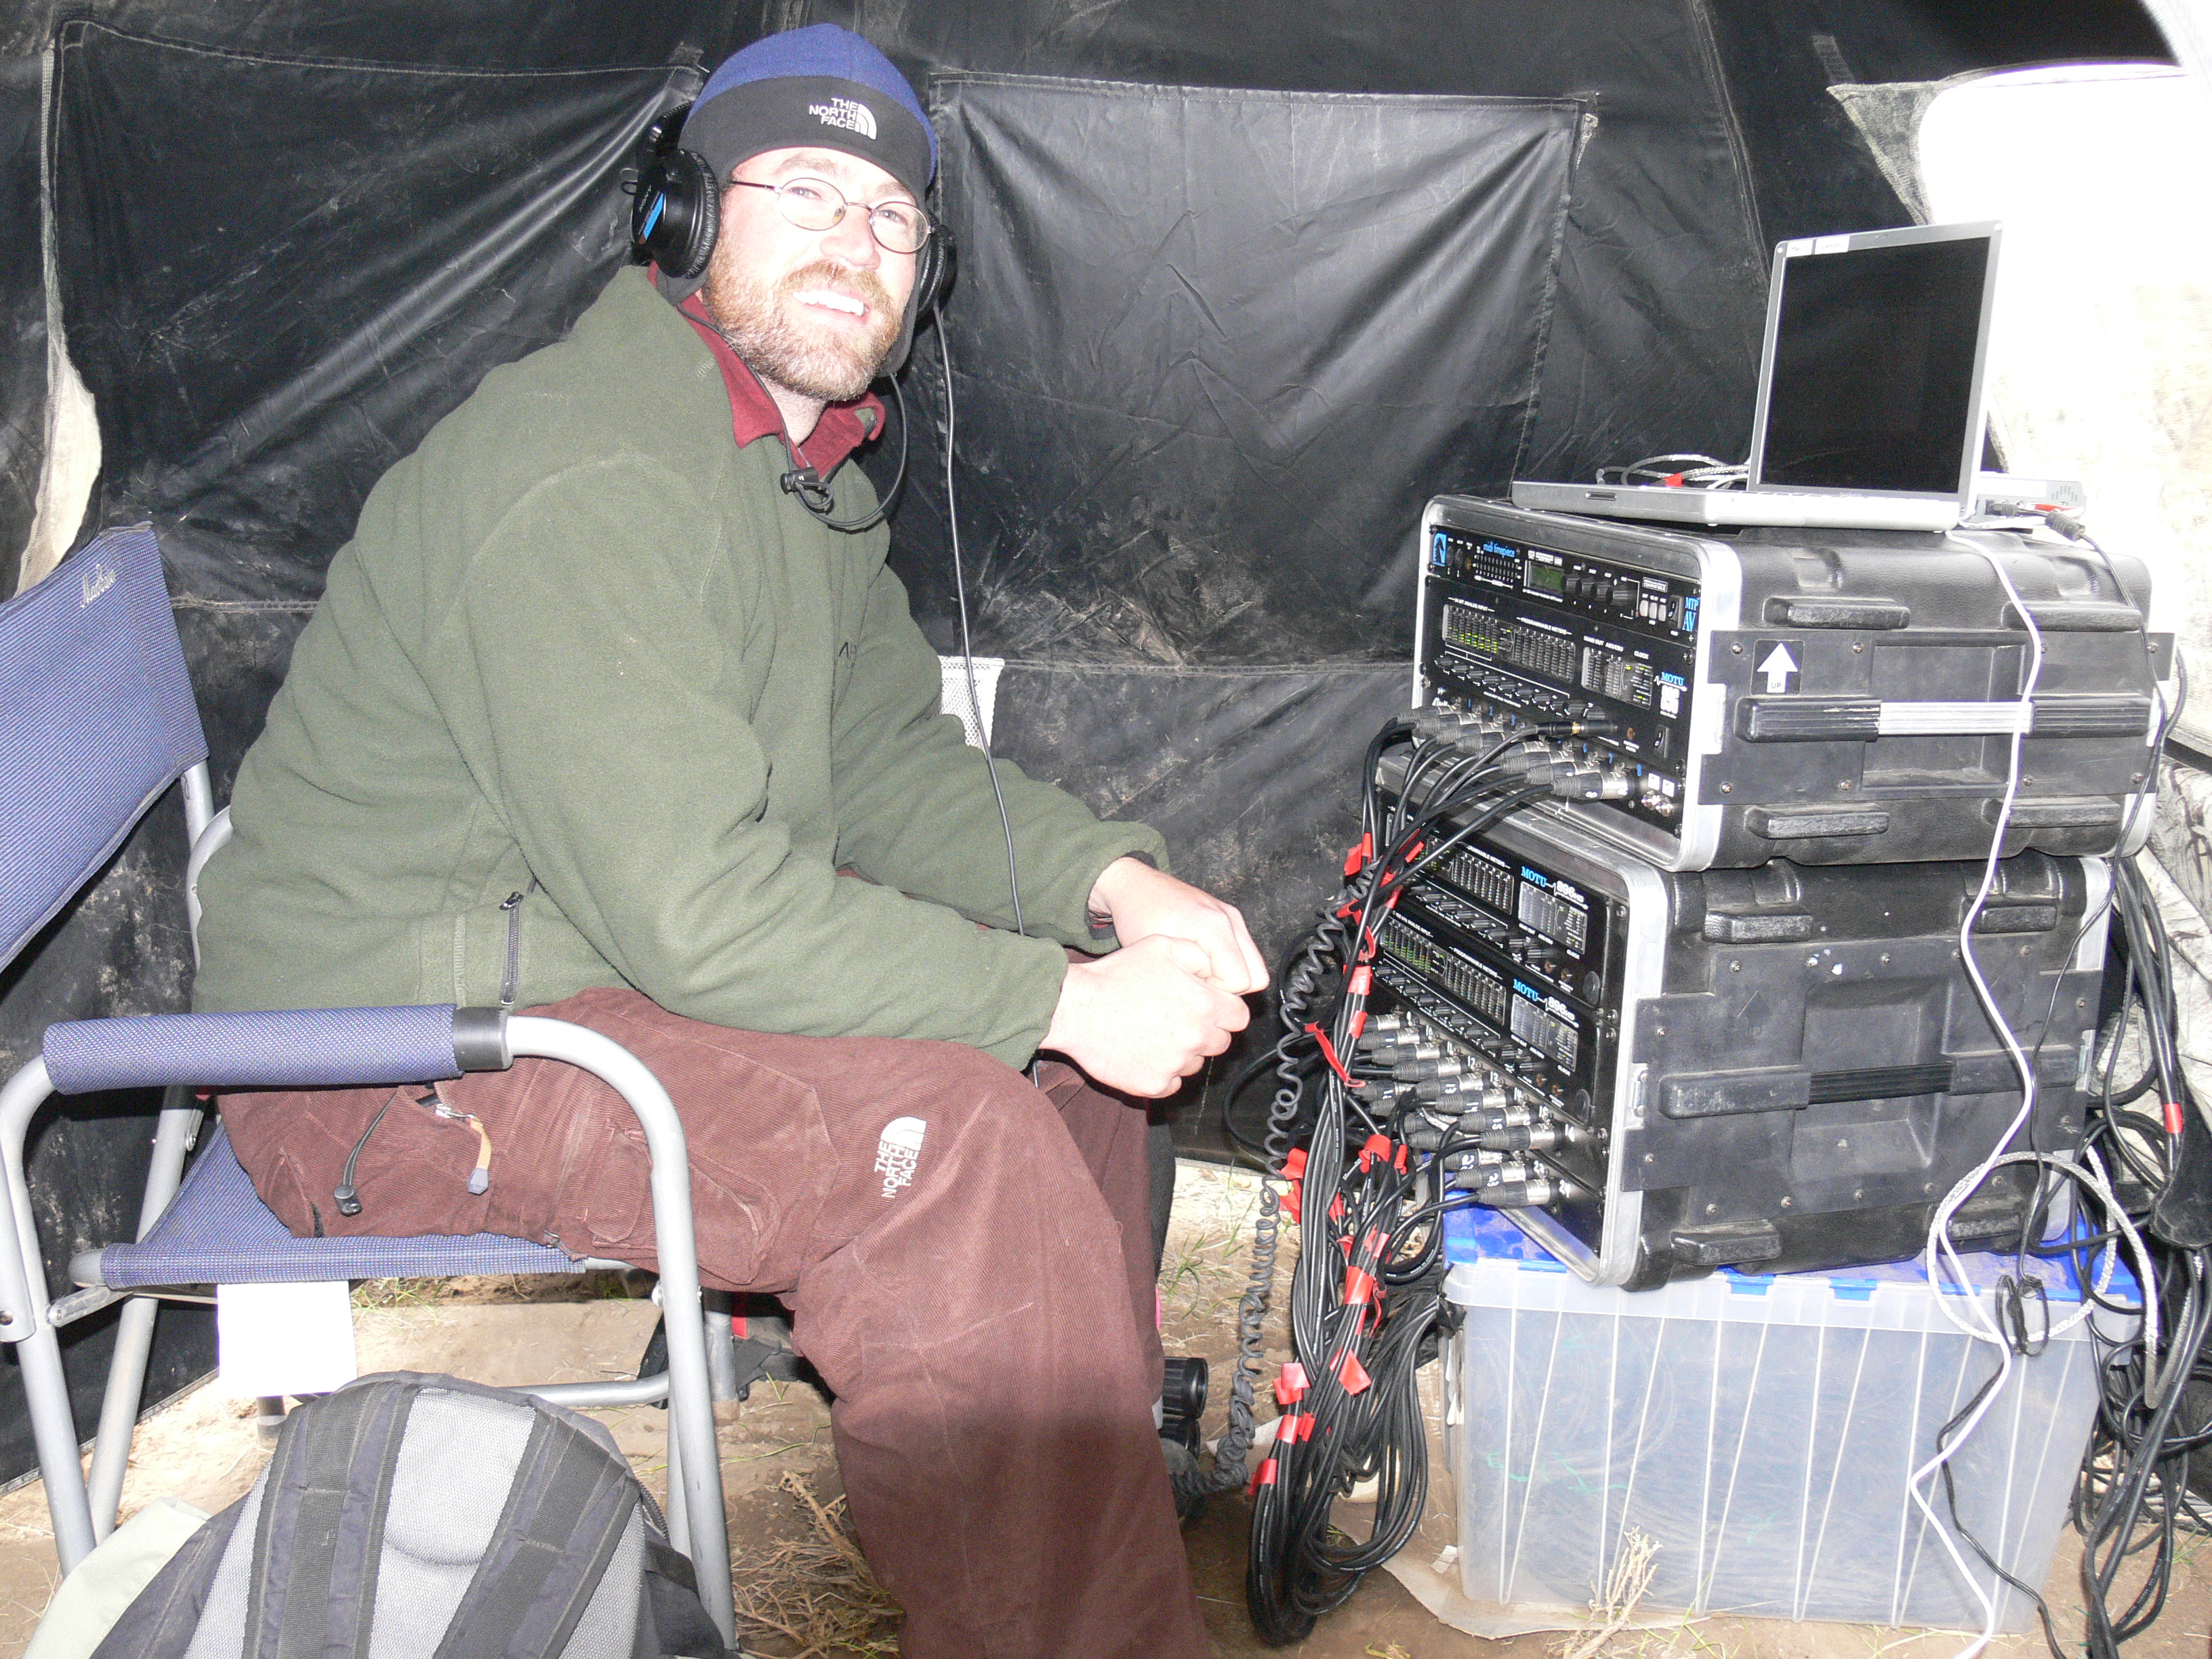 Alan manning the microphone array, 2007